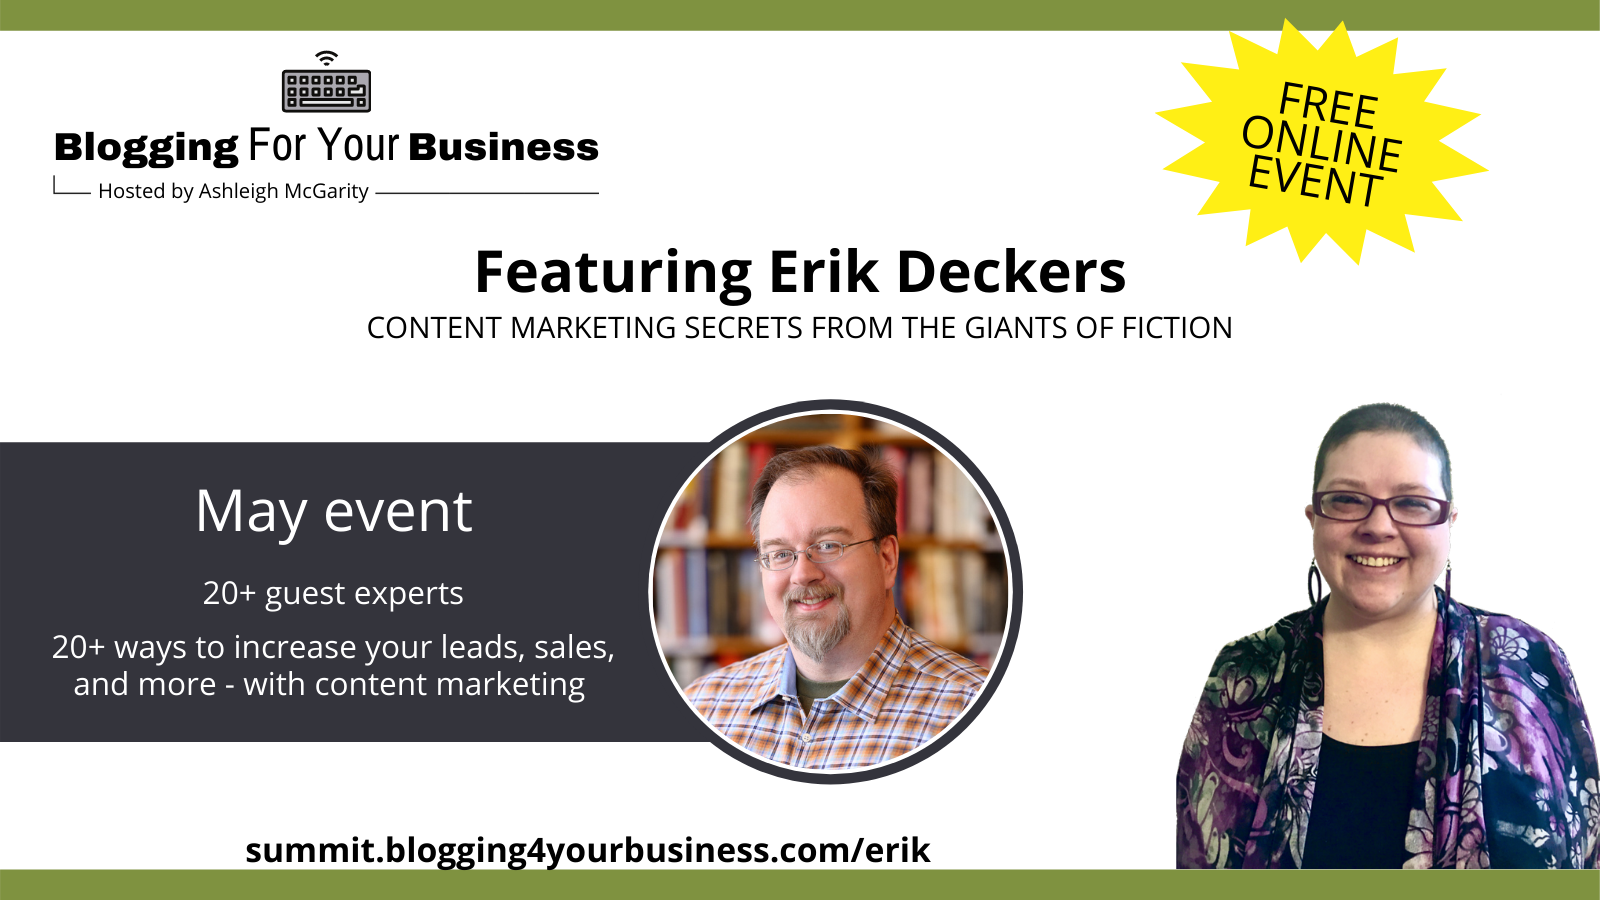 Blogging for Your Business - featuring Erik Deckers